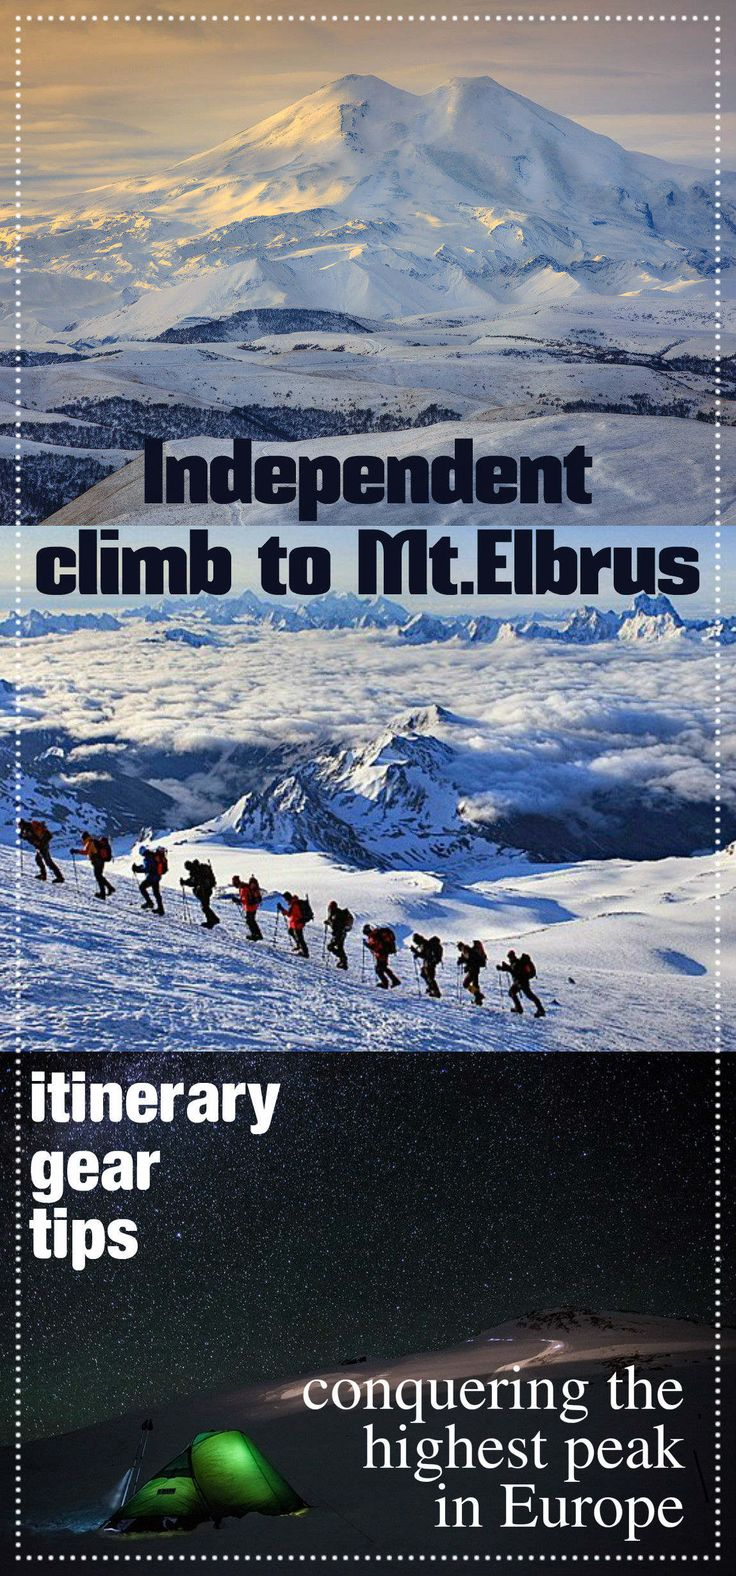 Climbing mount Elbrus without a guide, all you need to know to prepare. Climbing itinerary, gear, acclimatization tips, routes, maps, budget.